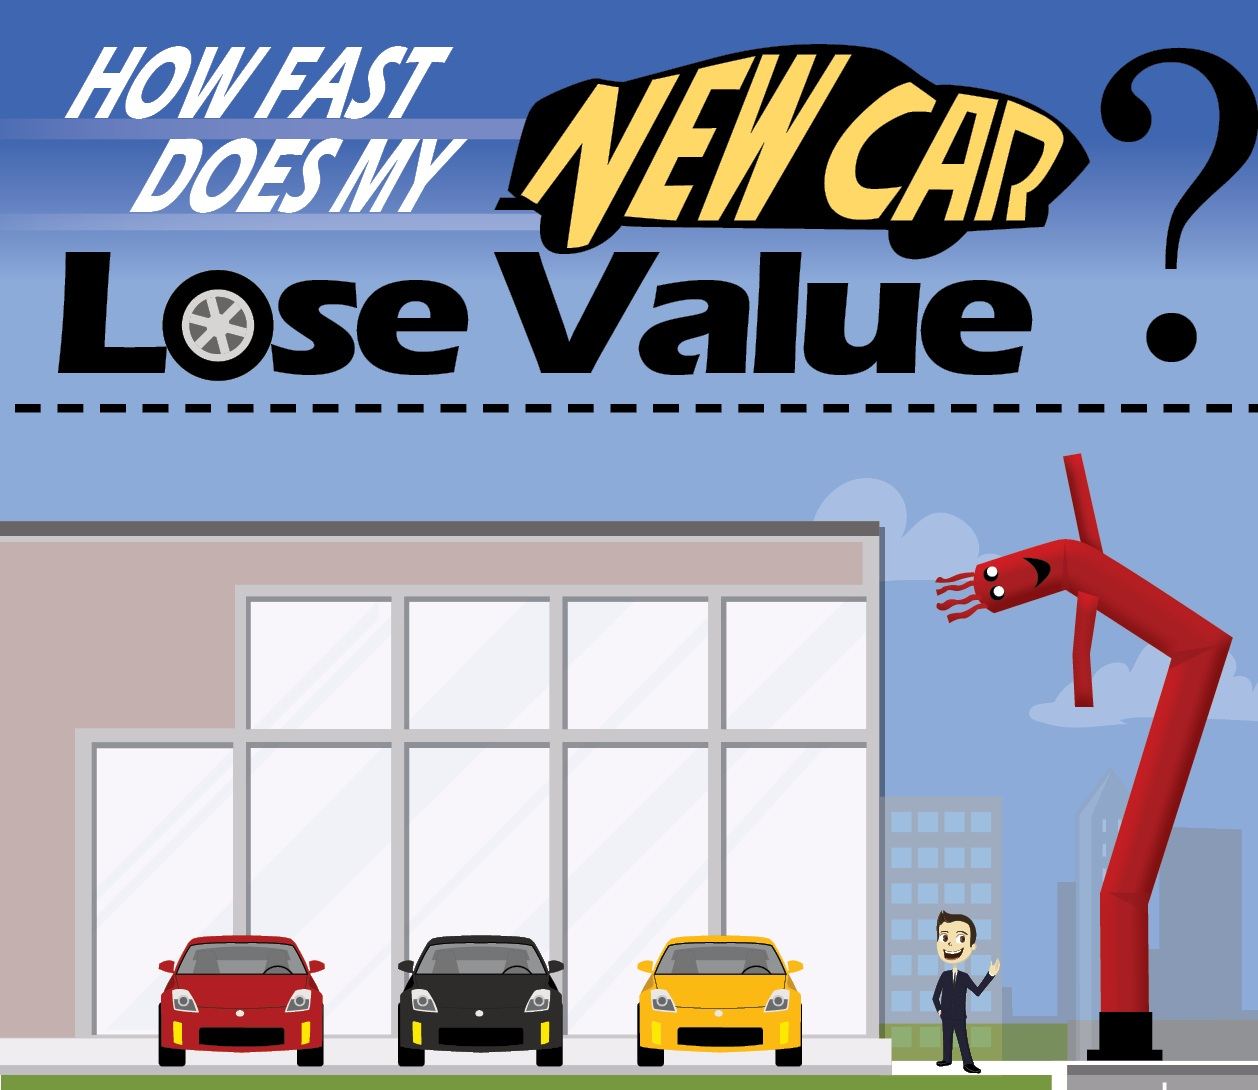 how-fast-does-my-new-car-lose-value-2_-_cimkep.jpg